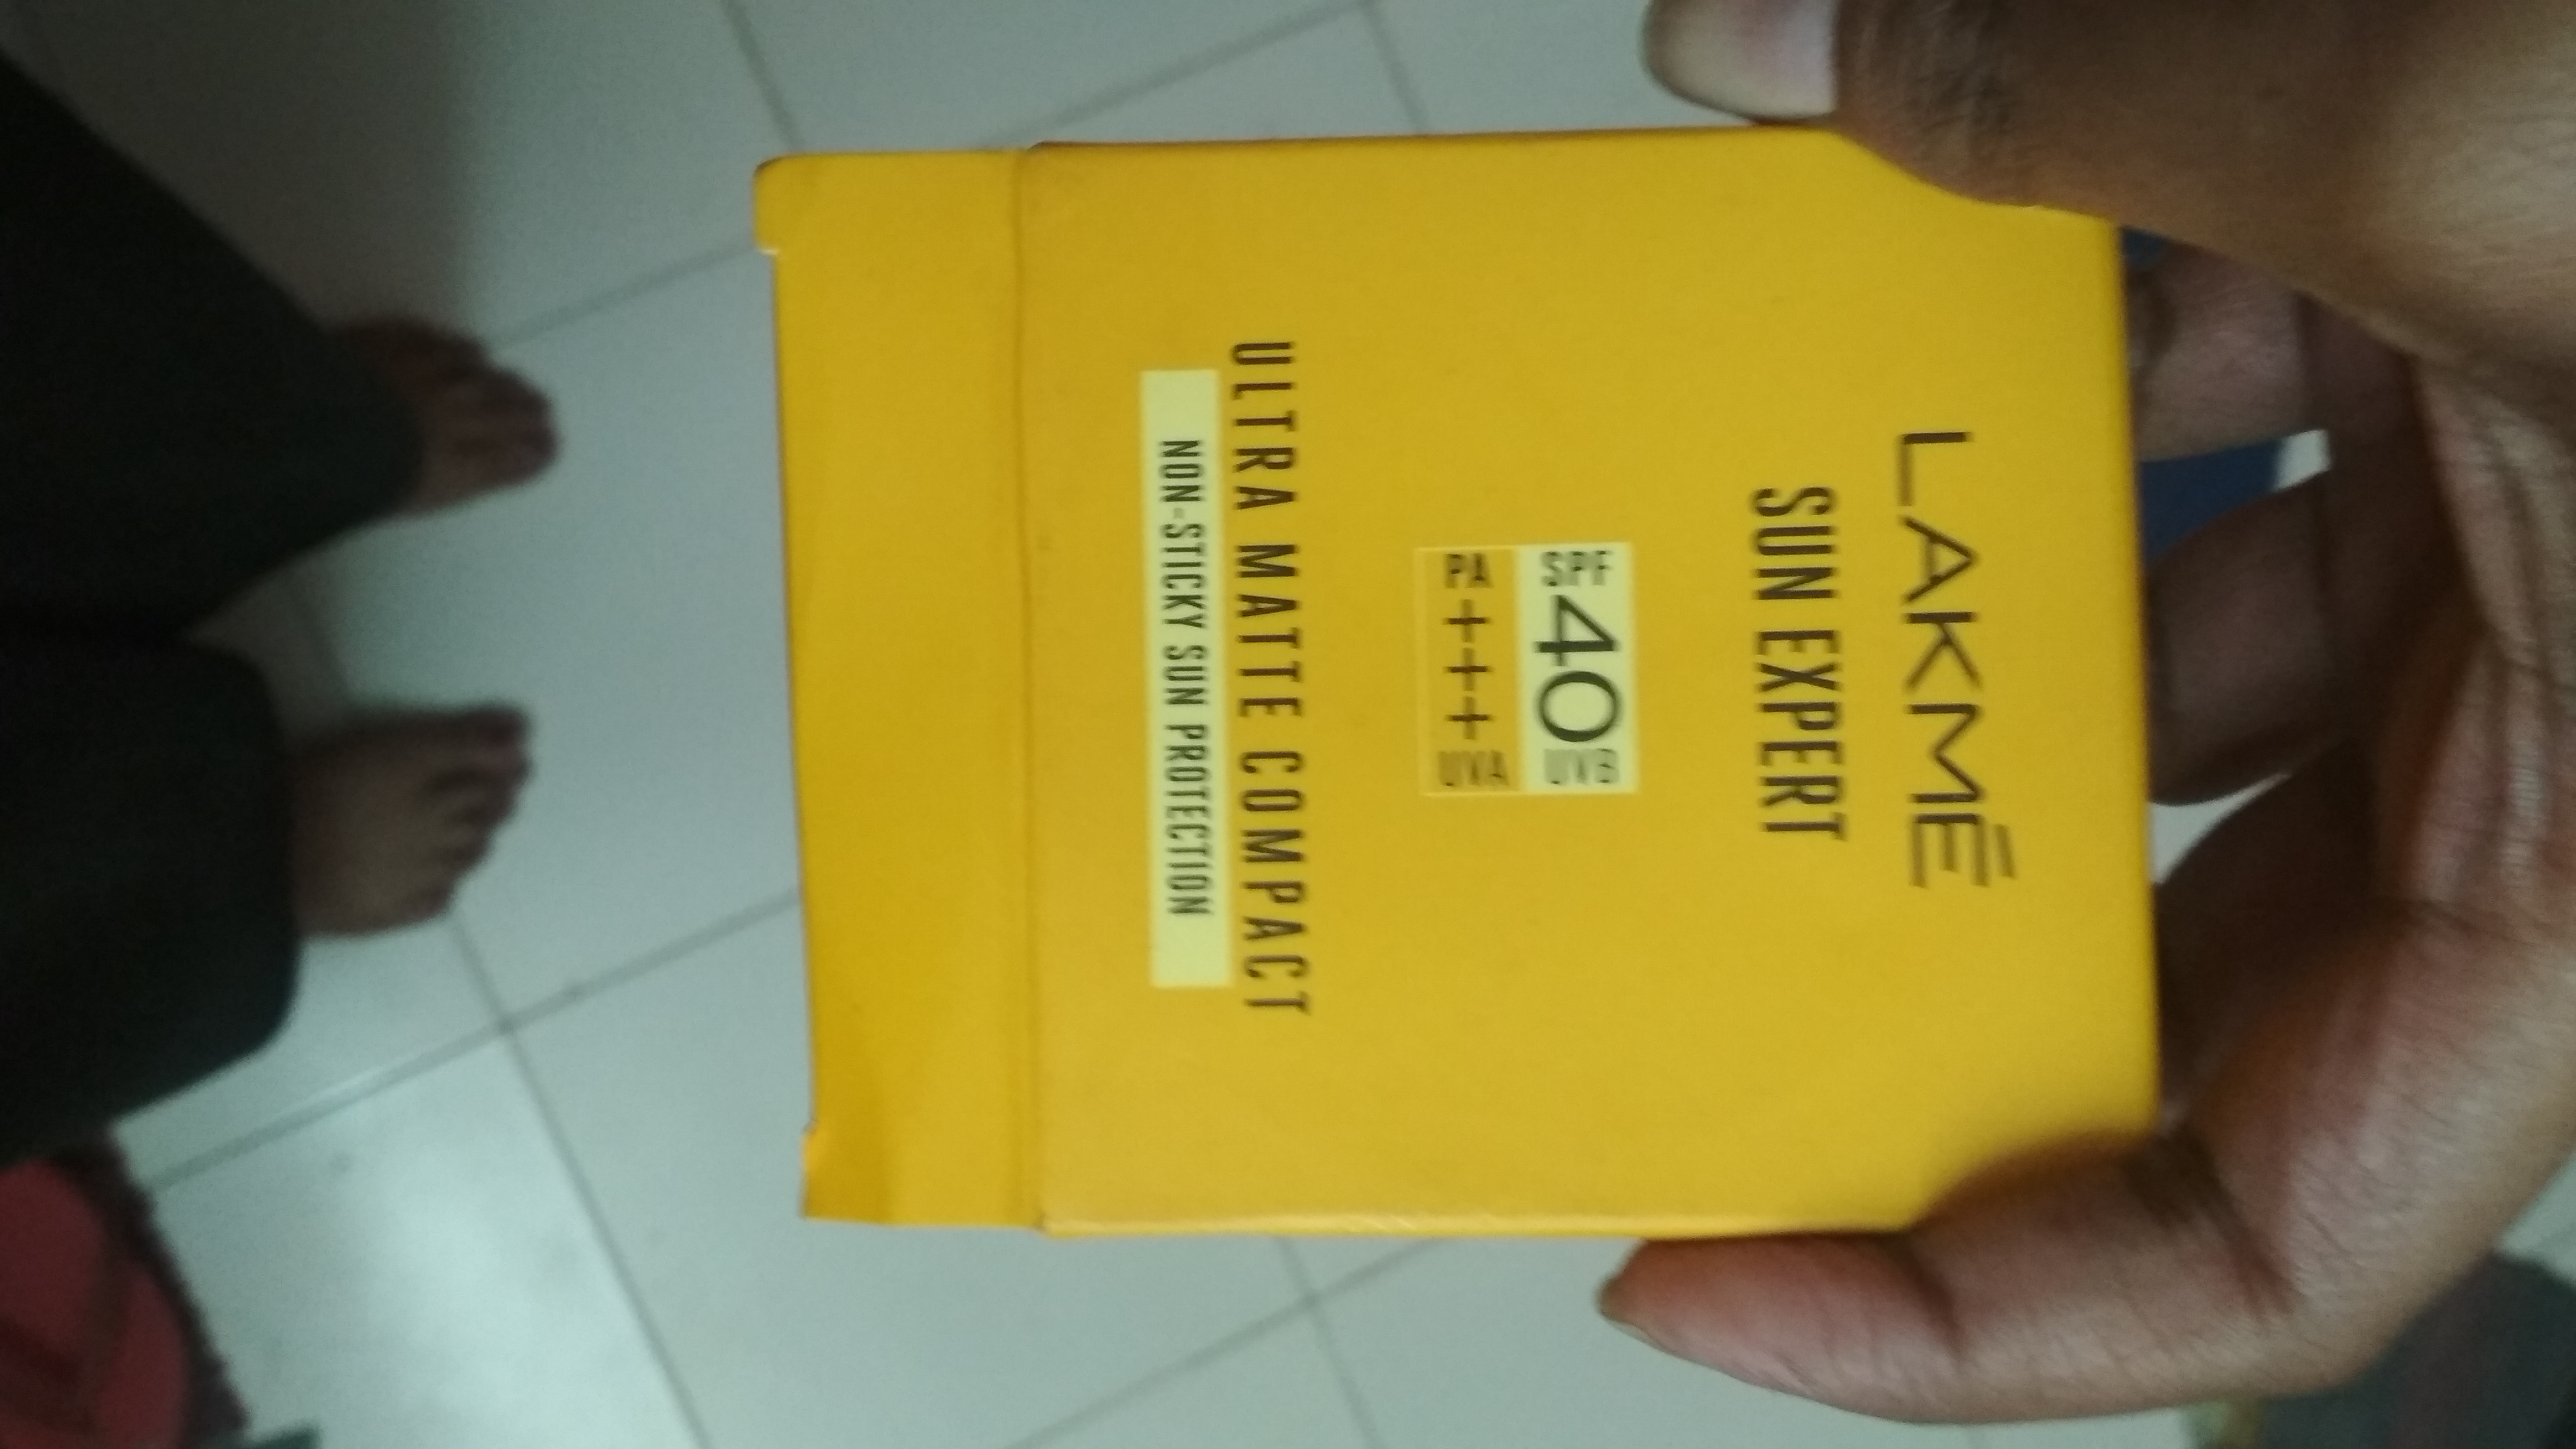 fab-review-Lakme sun expert-By mitshu98-2